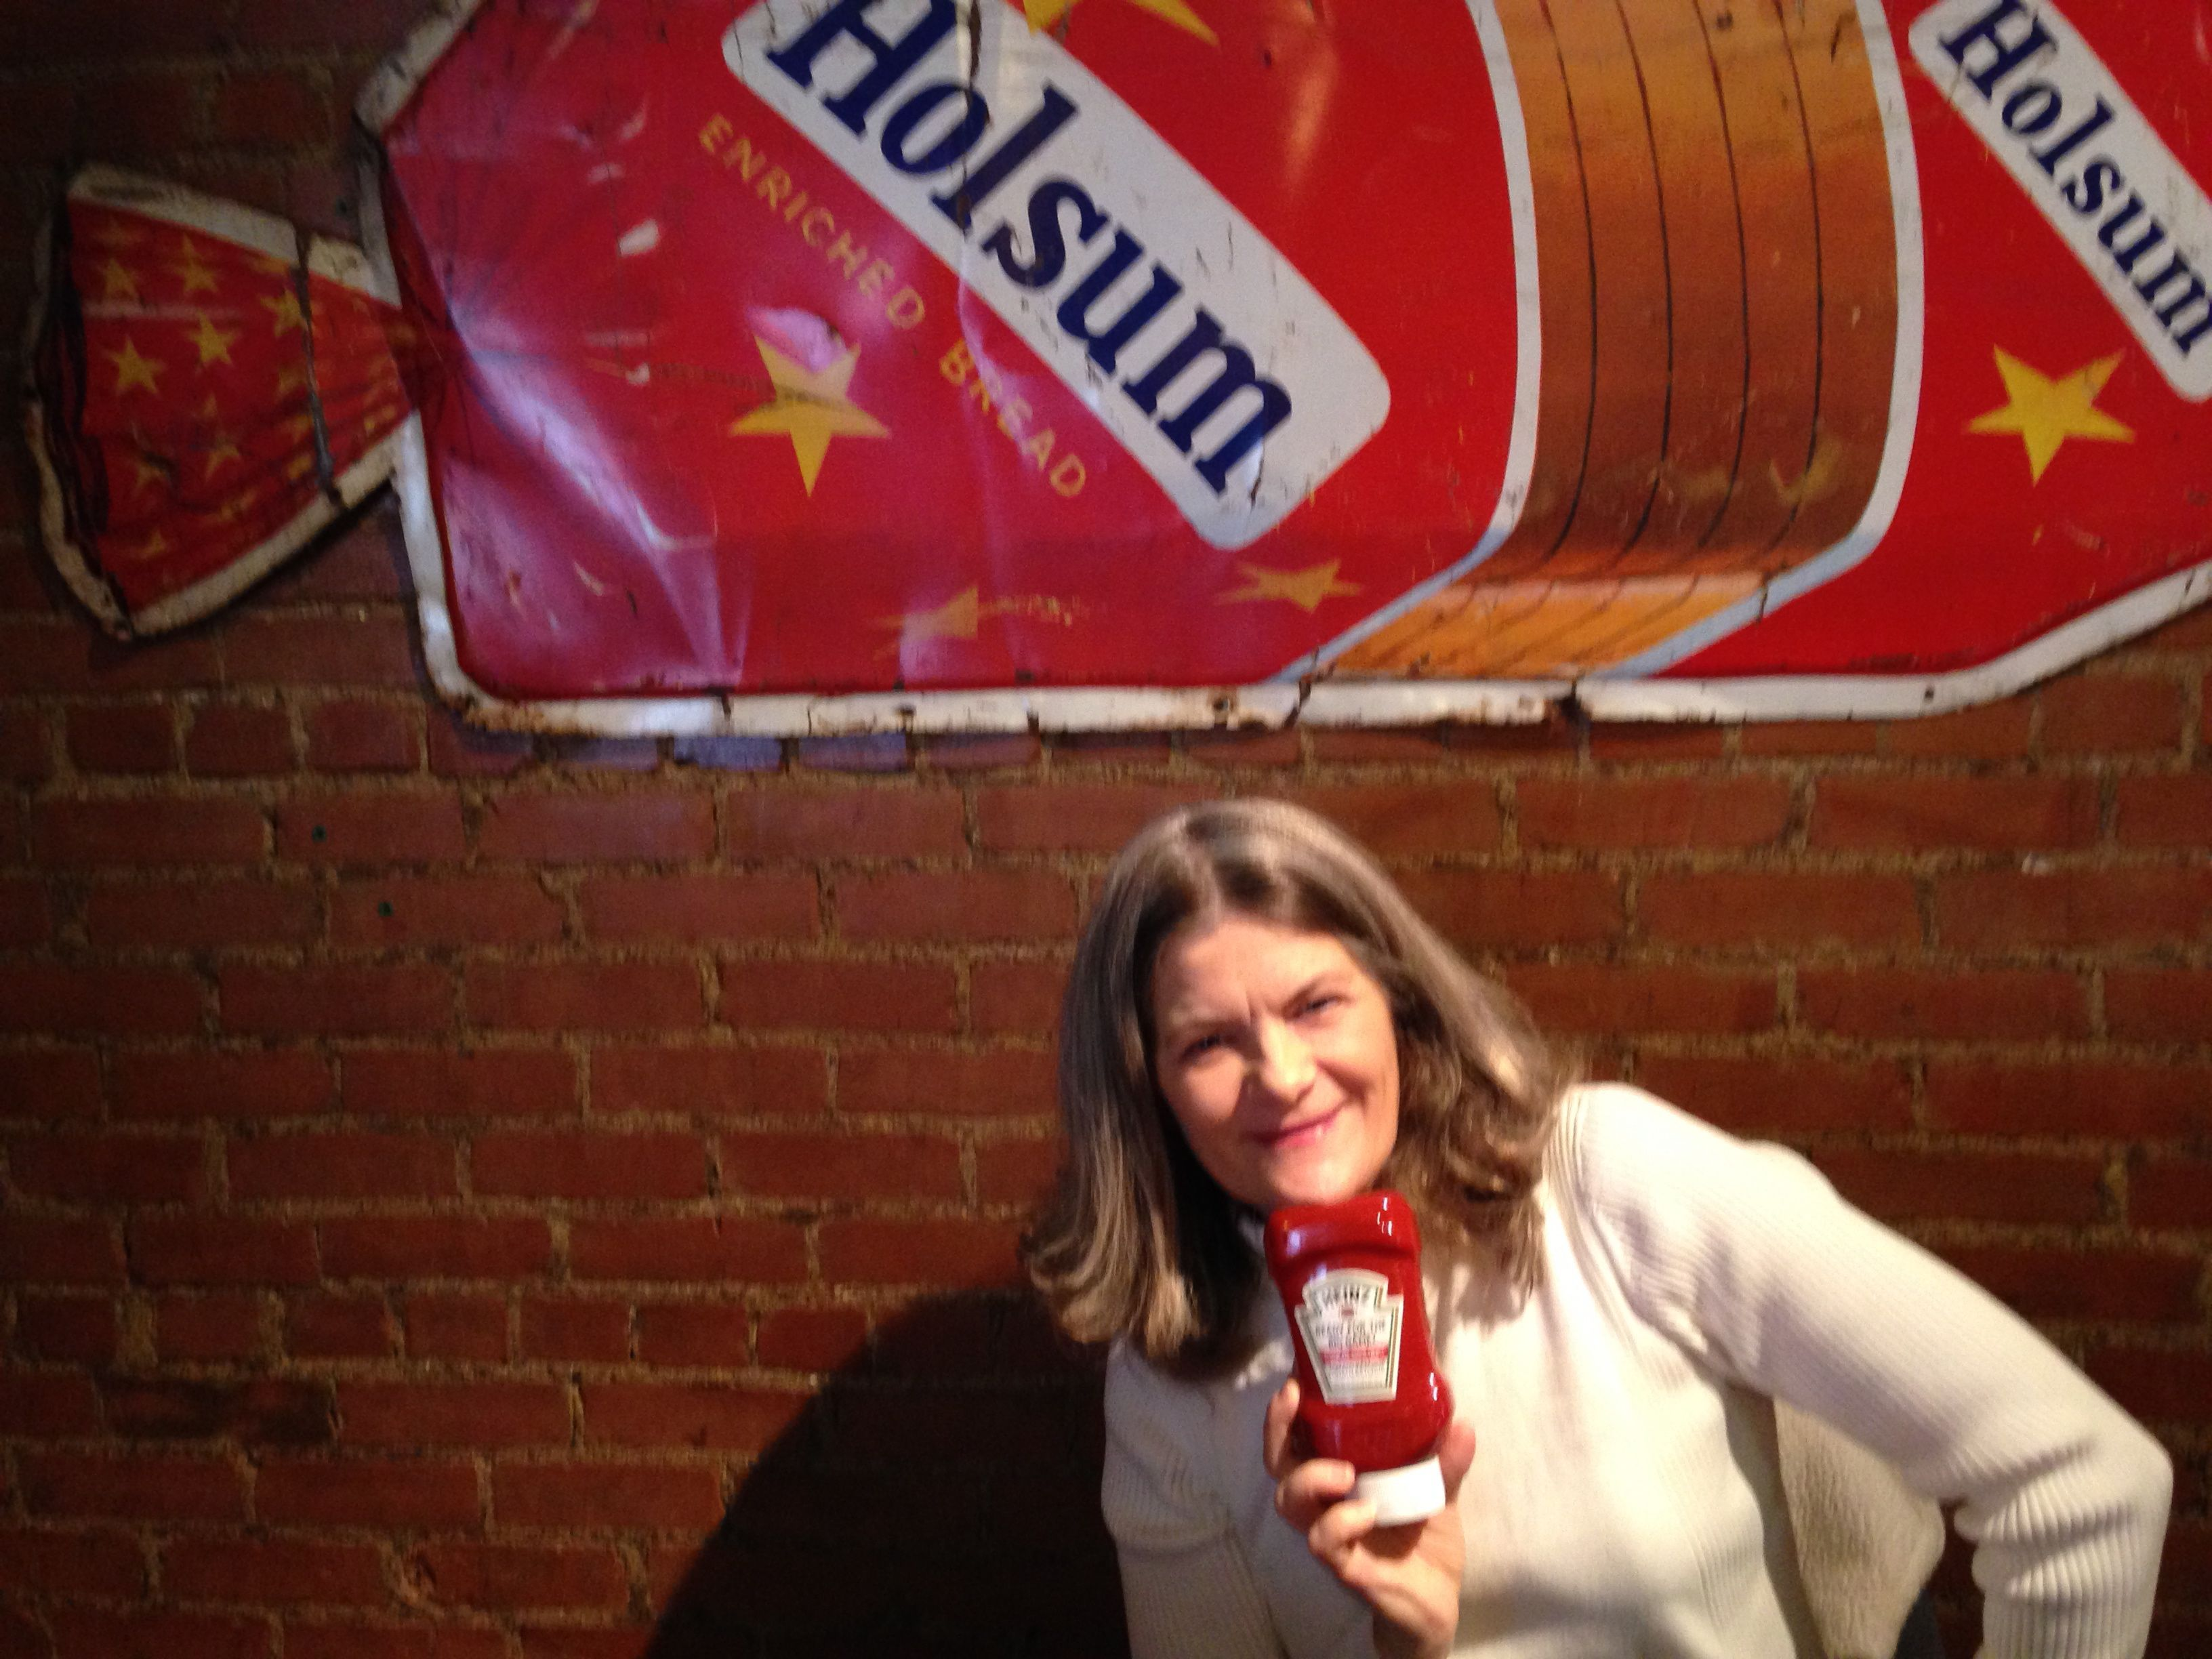 I just entered the Show Us Your Heinz photo sweepstakes! More than ...